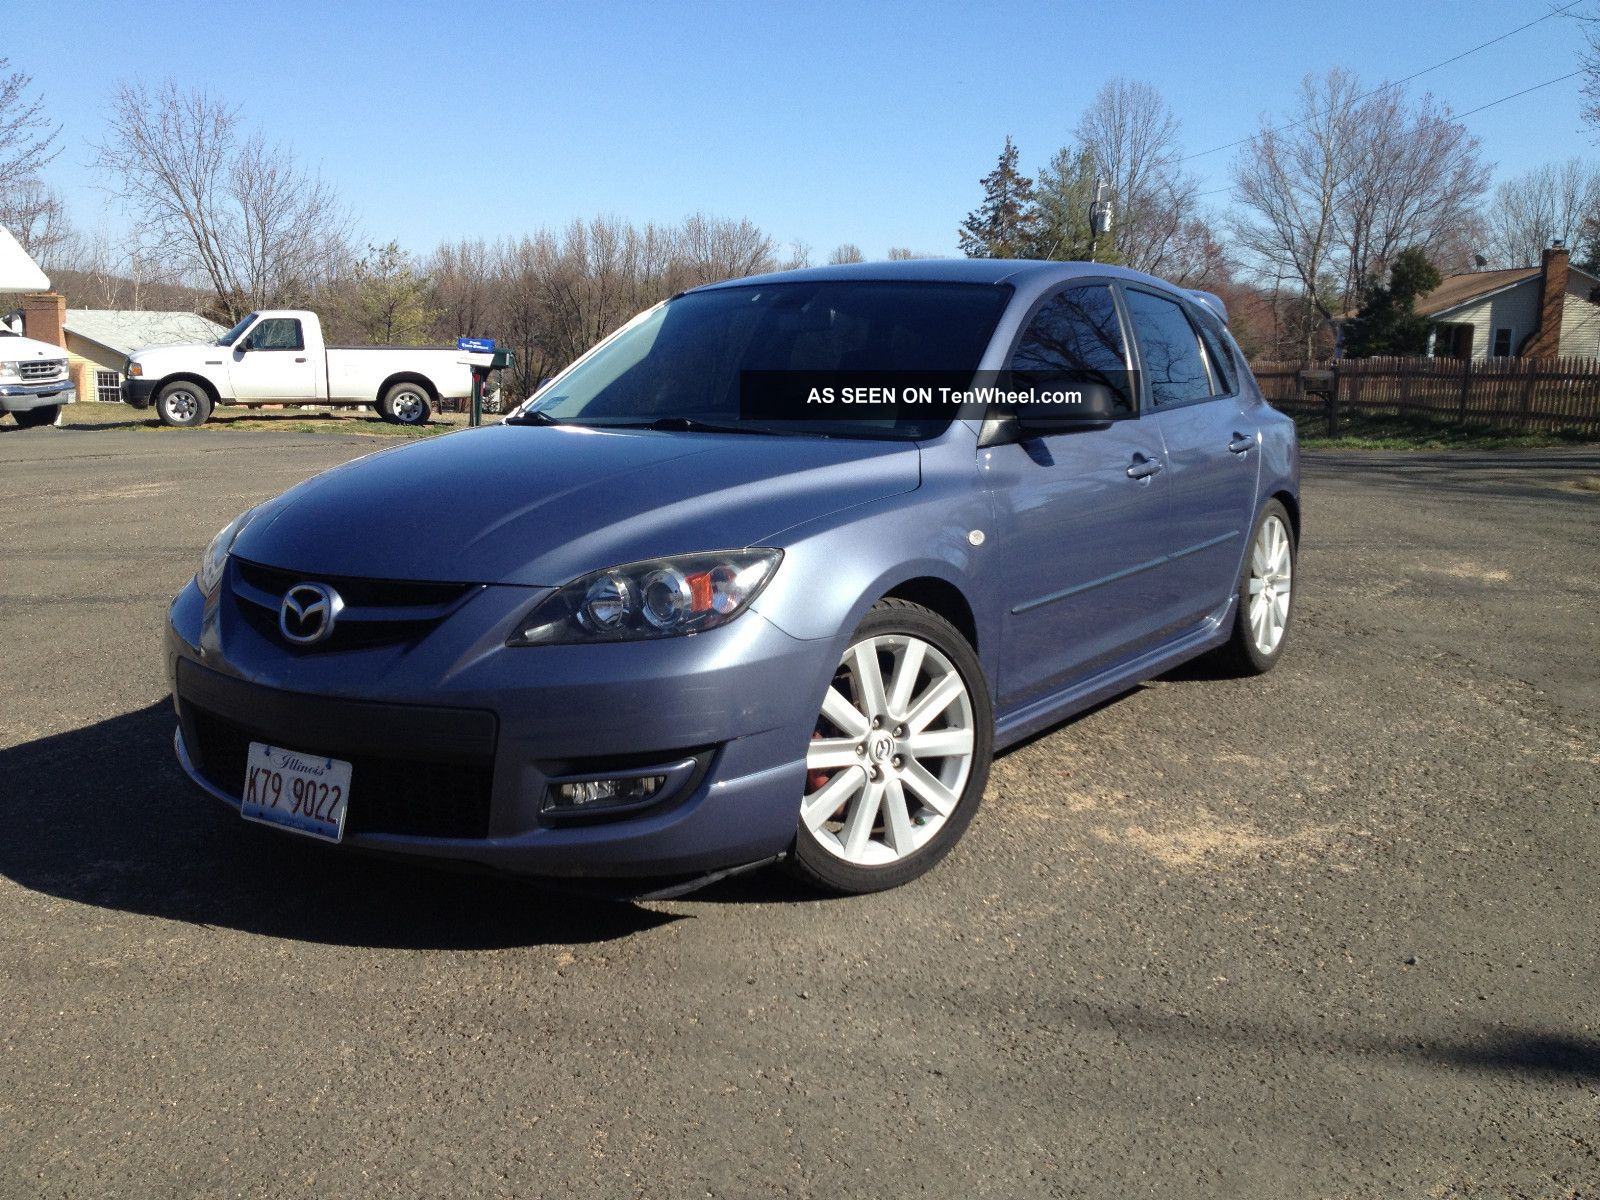 Le Meilleur 2007 Mazda 3 Mazdaspeed Hatchback 4 Door 2 3L Some Mods Ce Mois Ci